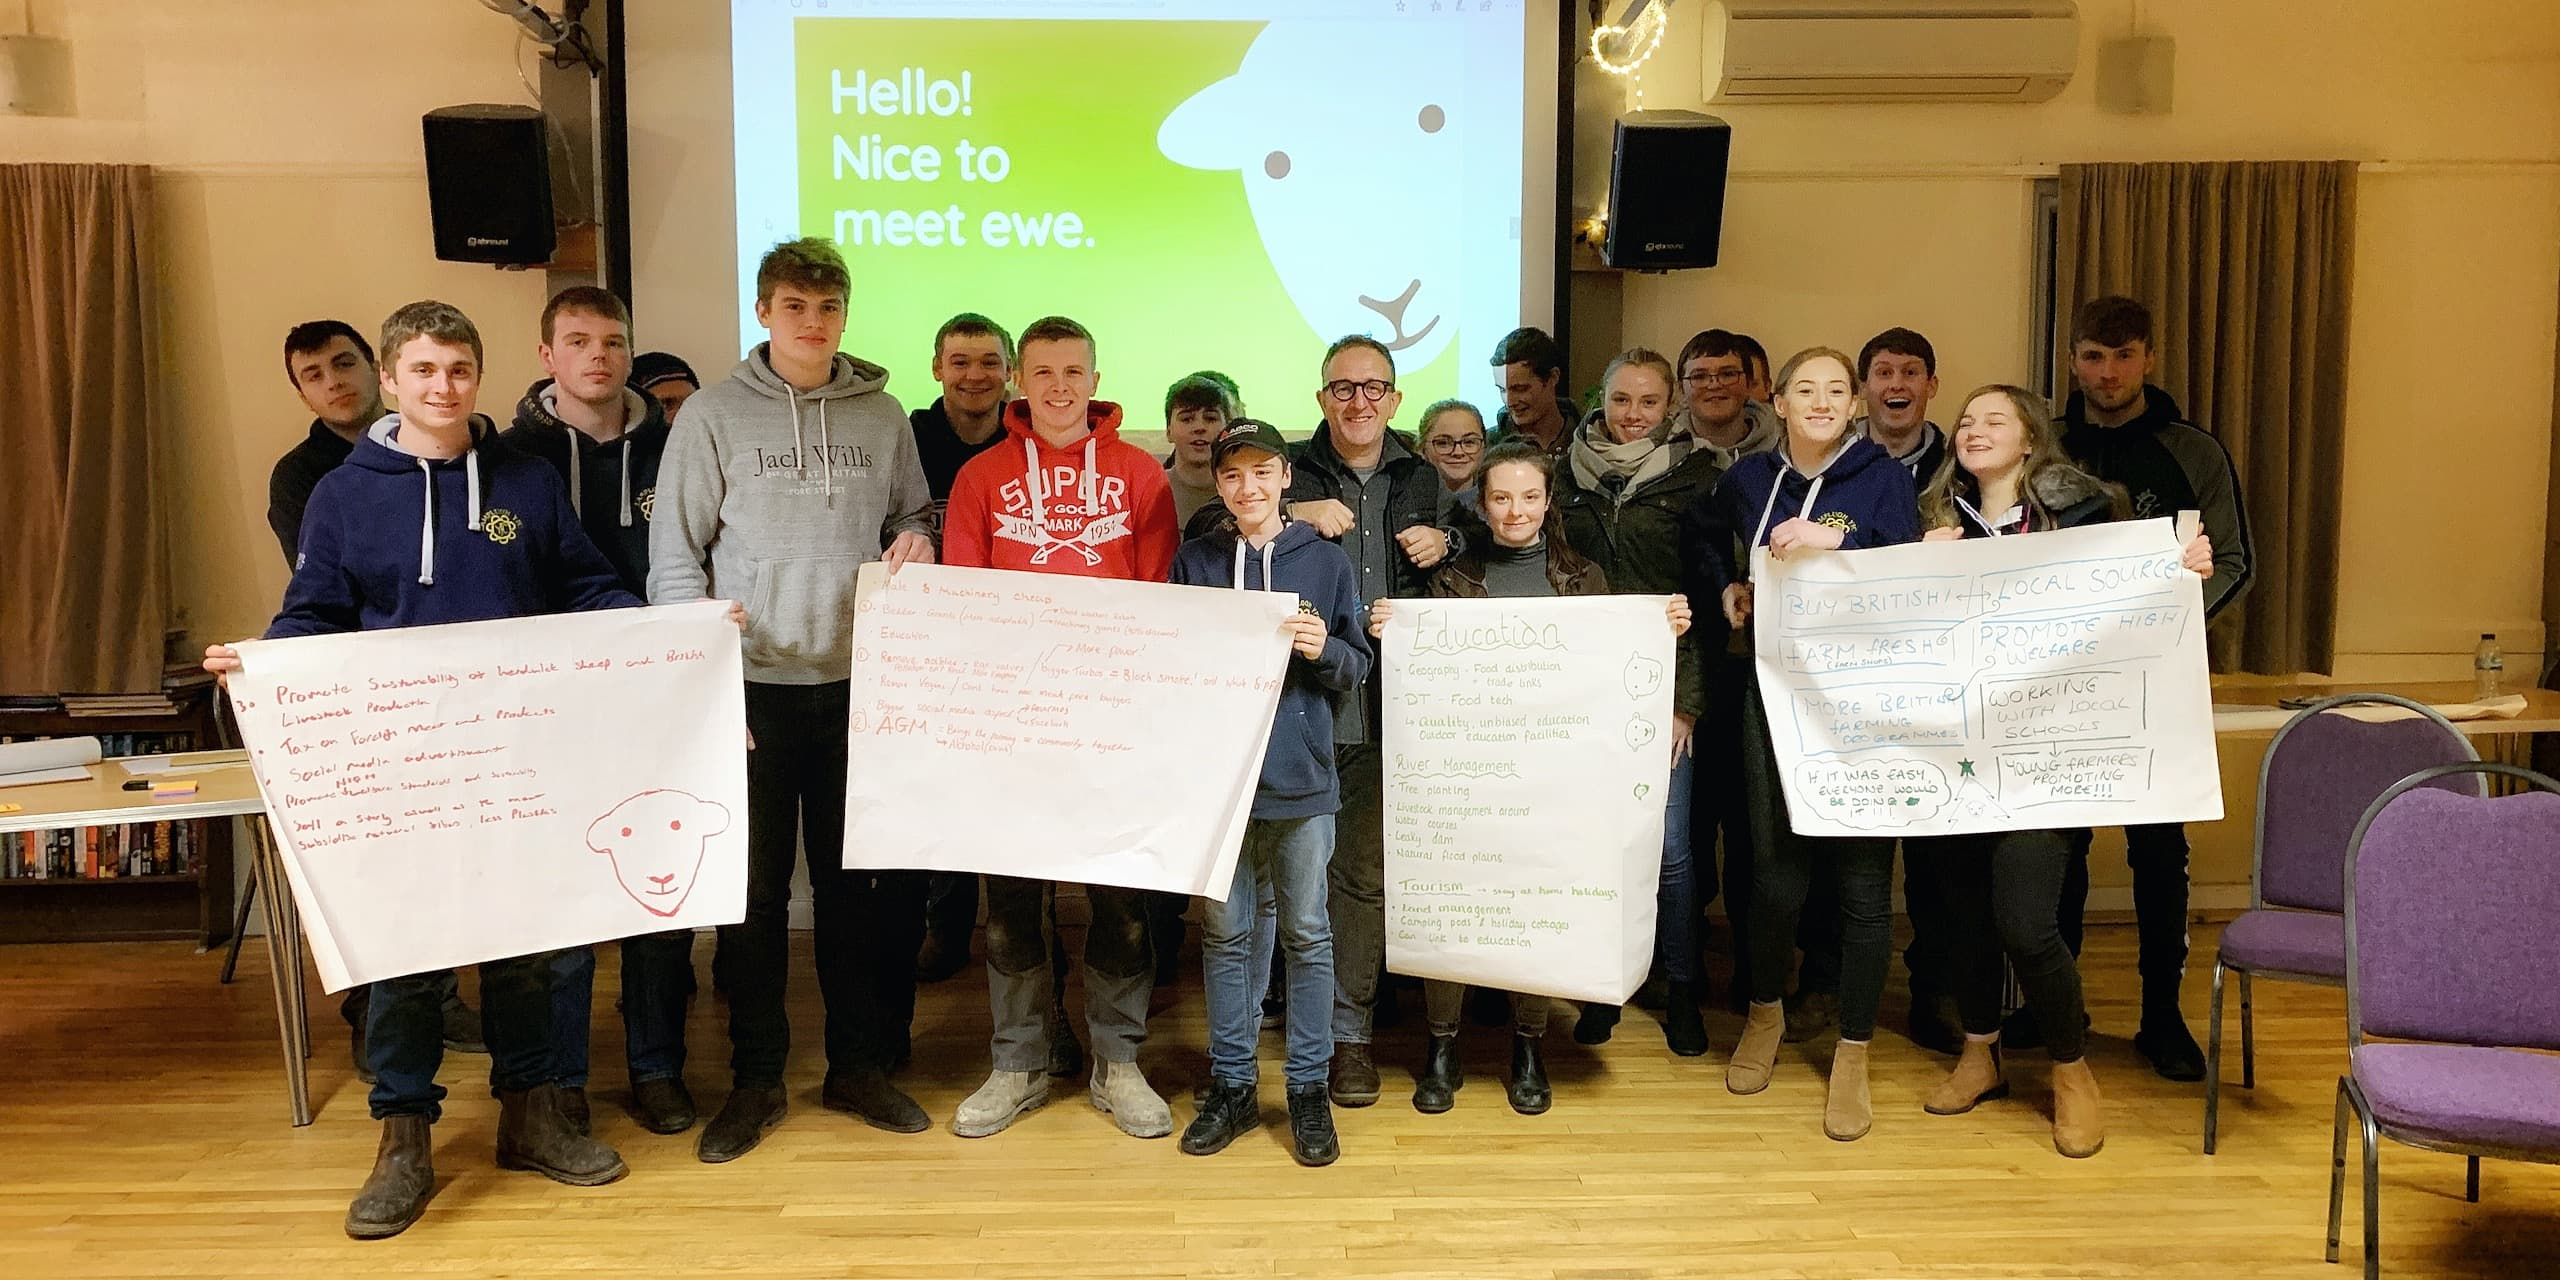 Herdy Rouses Lamplugh Young Farmer's Club